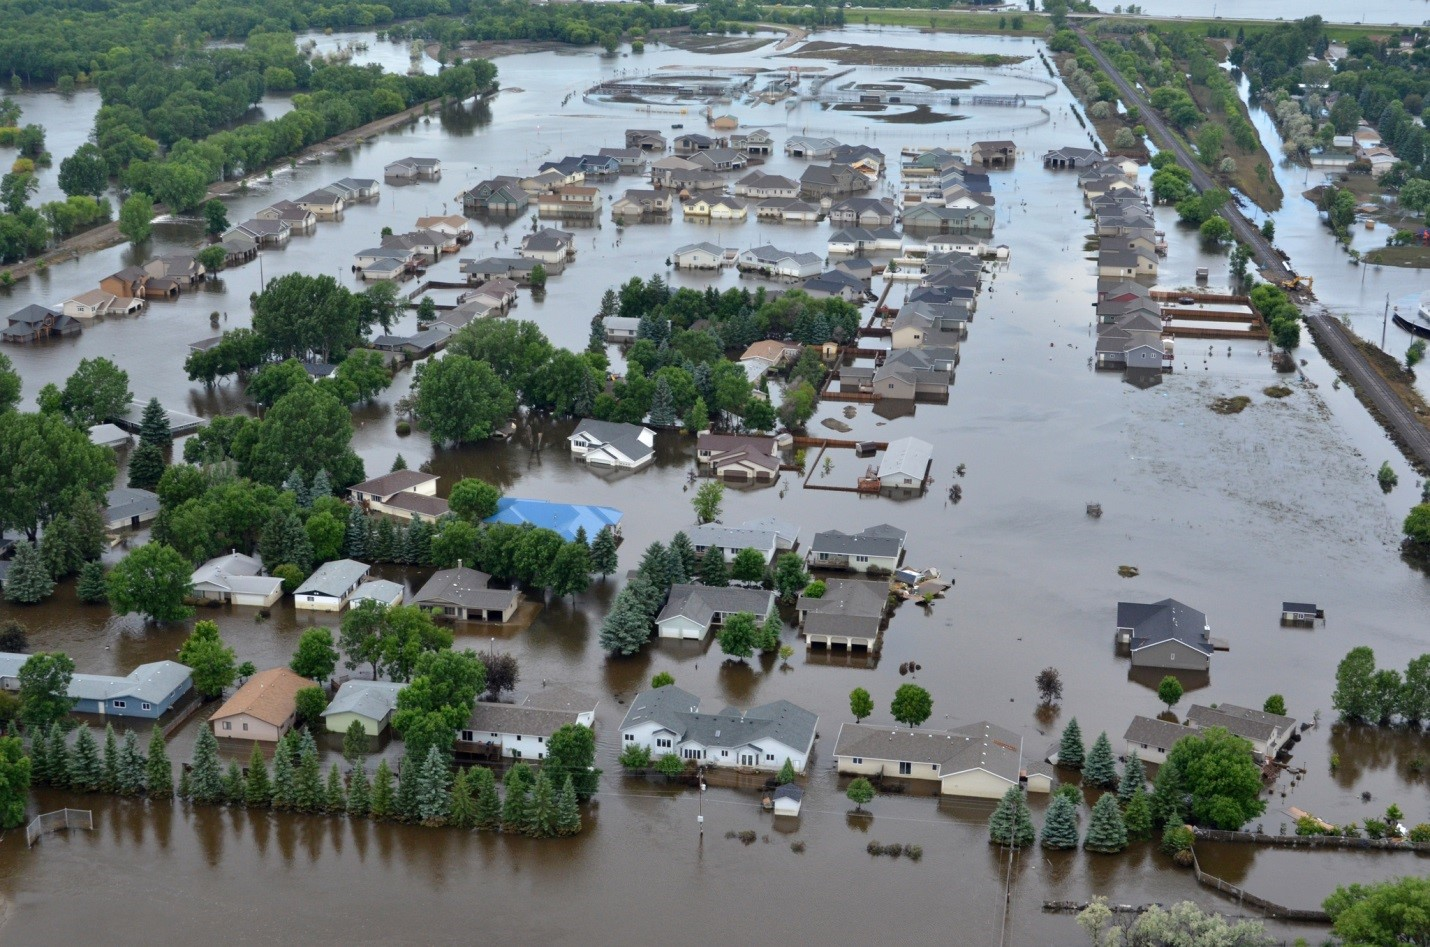 A view of Minot, North Dakota, in the midst of the biggest flood on record in the Souris River, taken on July 6, 2011. Credit: FEMA